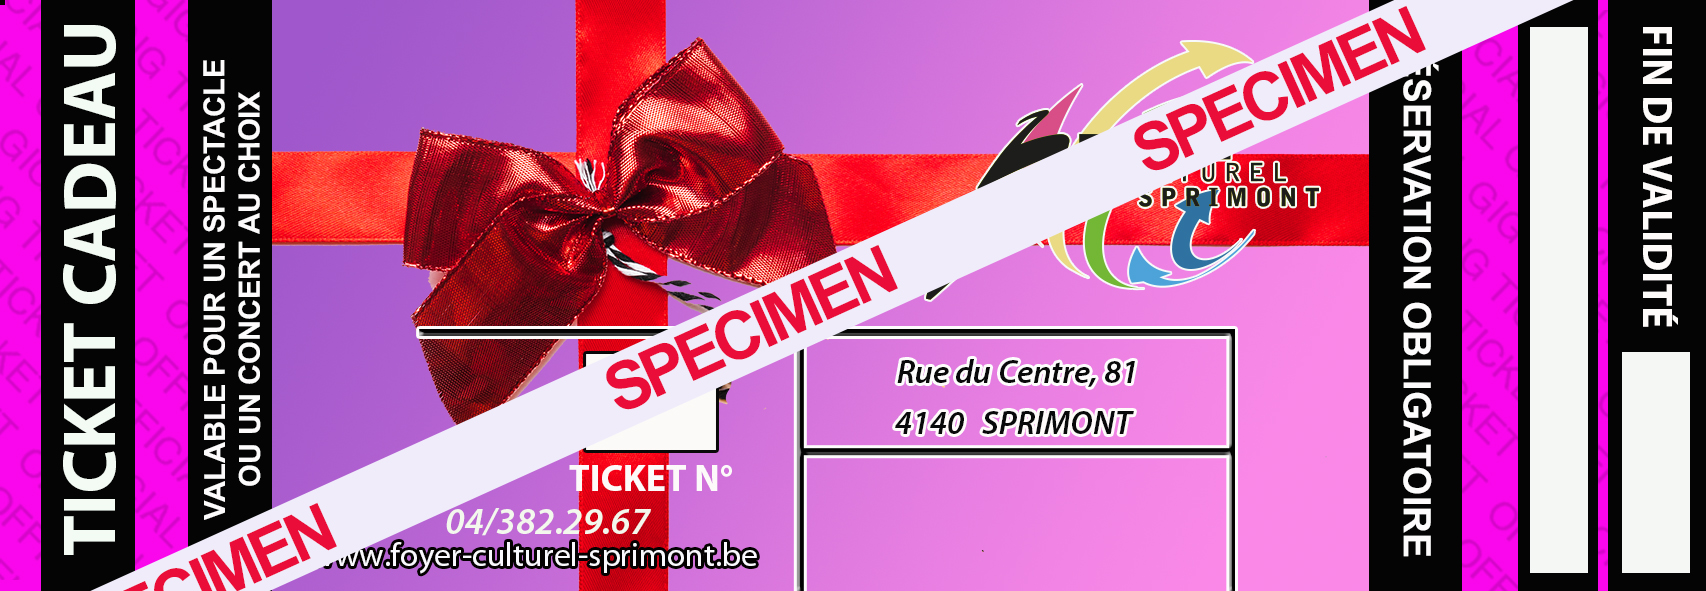 ticket carte cadeau specimen